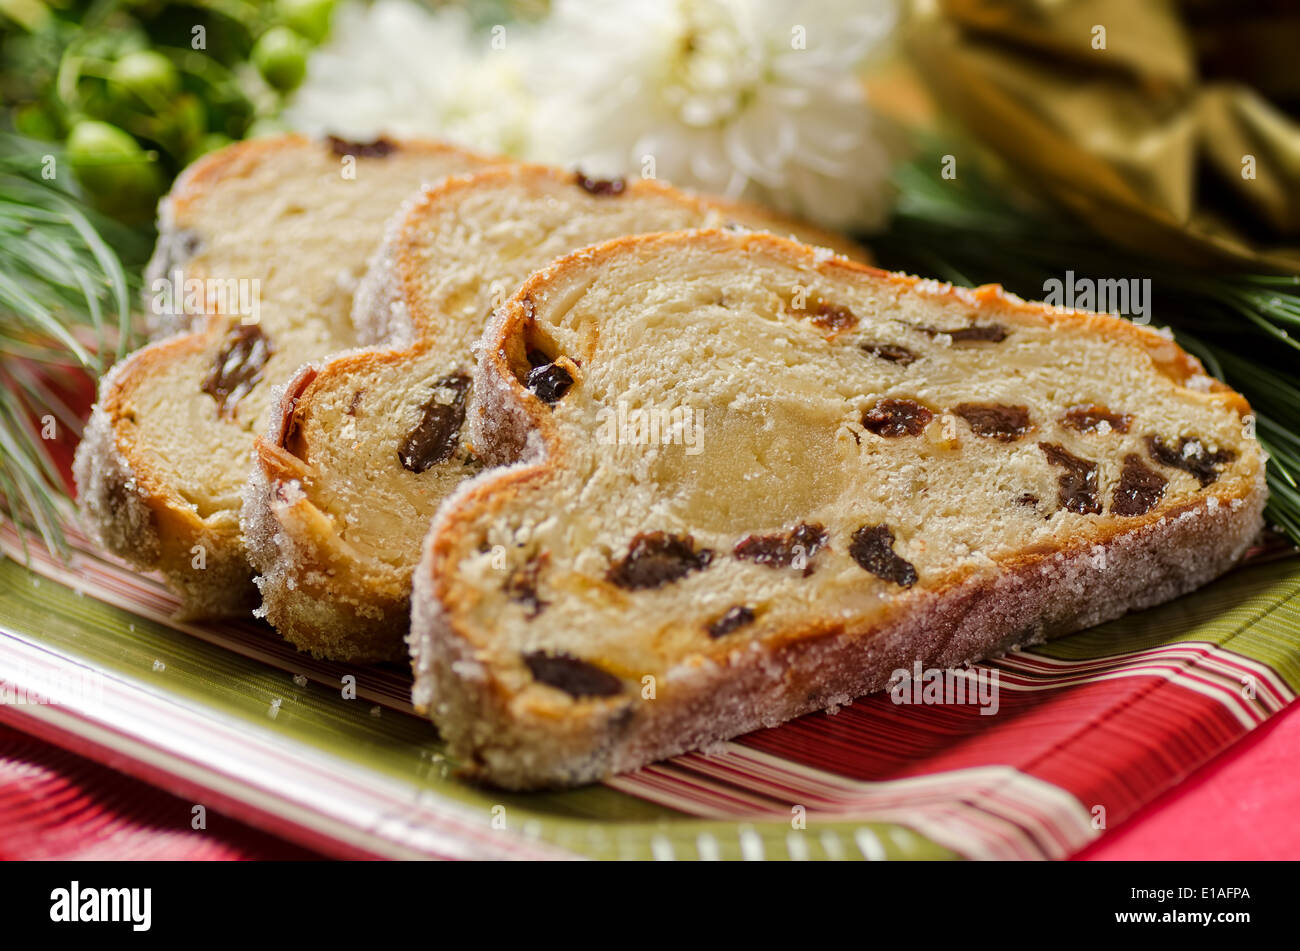 A traditional stollen fruit cake with raisins and marzipan center. - Stock Image